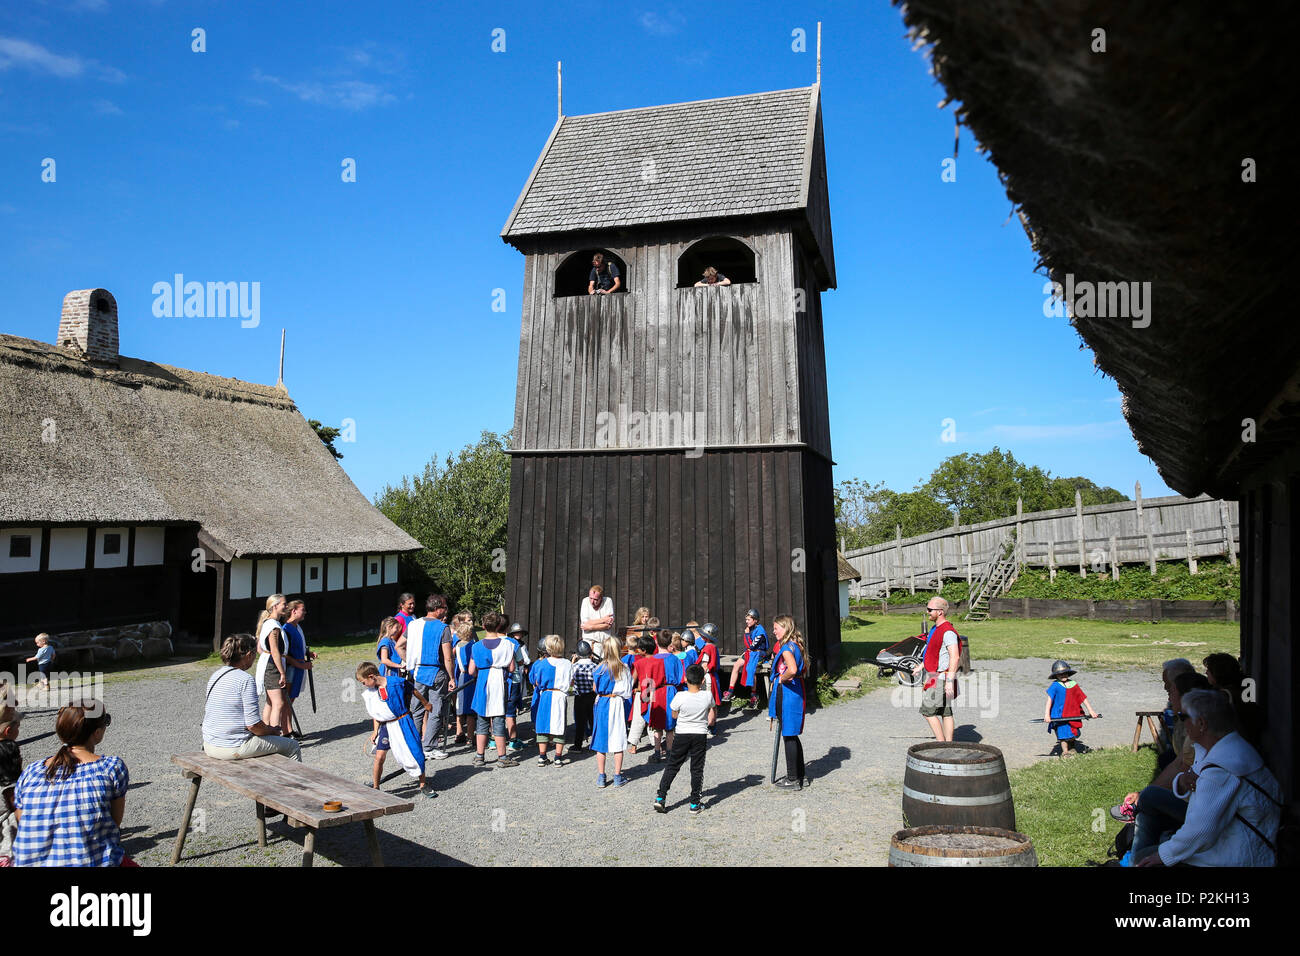 Middle Age Center, Middle Ages Village, Baltic sea, Bornholm, near Gudhjem, Denmark, Europe - Stock Image